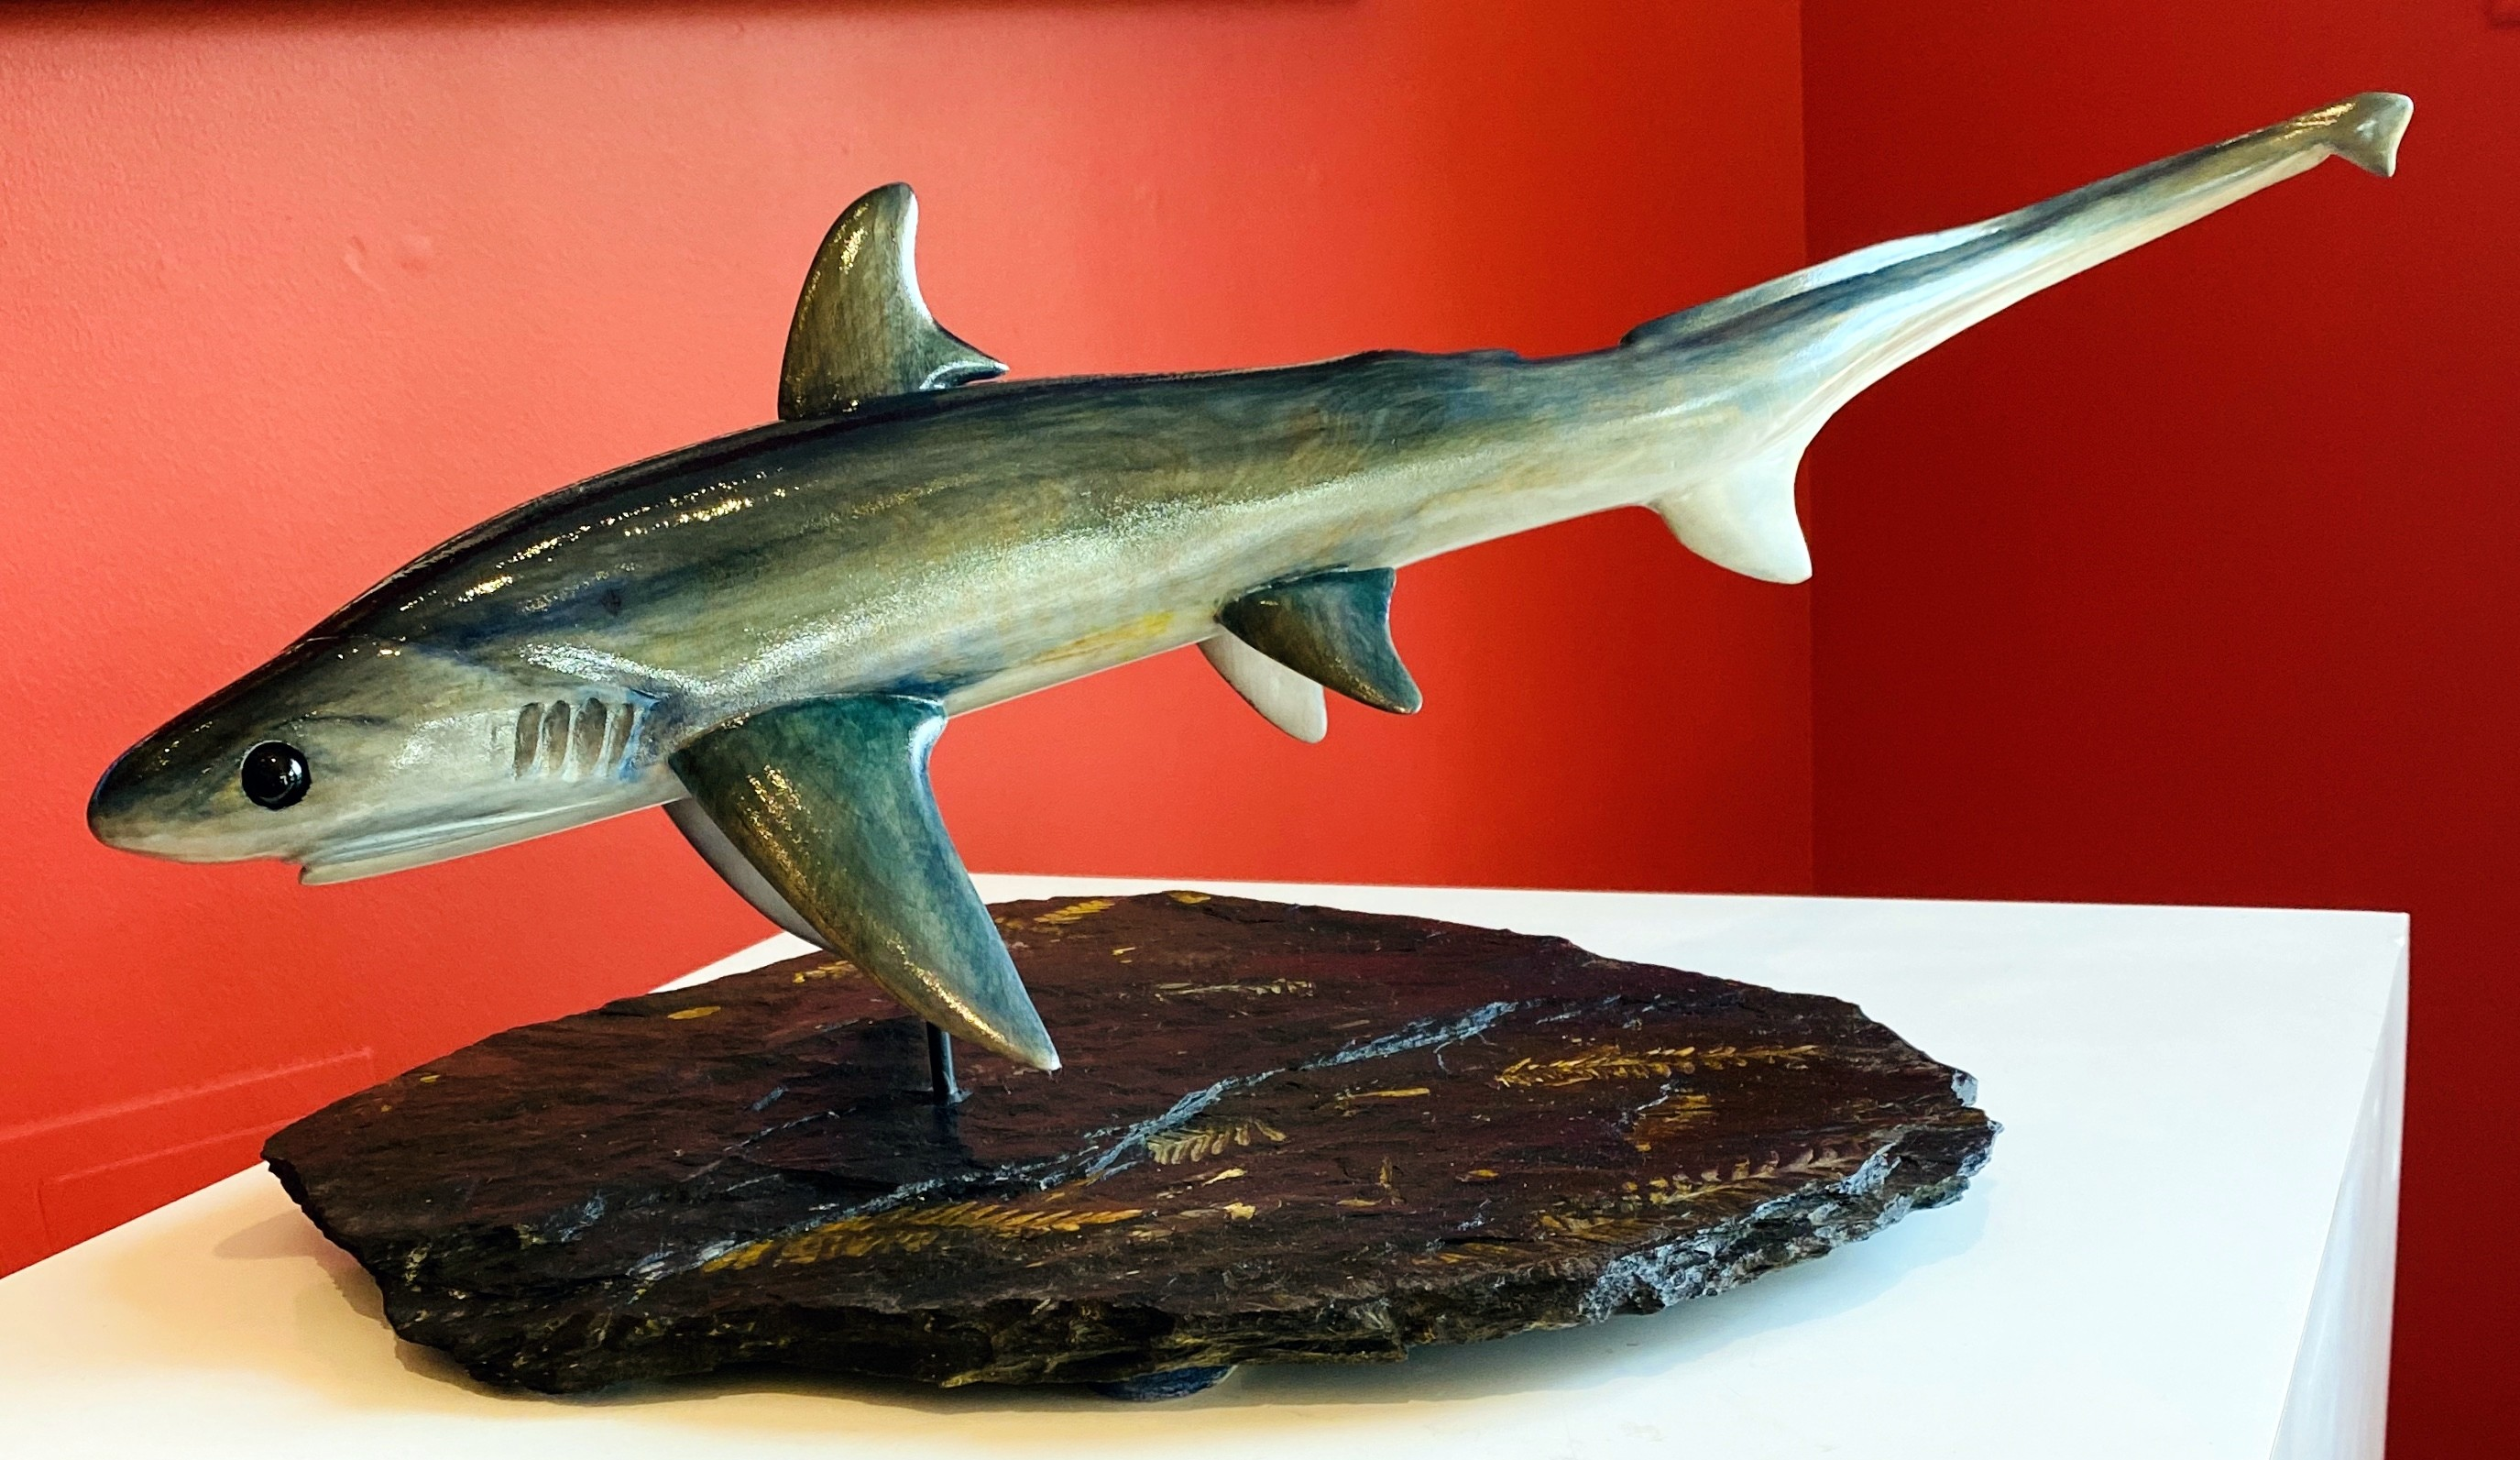 Christopher Compel_ wood carver_Sculptor_ Pa Blue fossil stone_cherry wood_Thresher Shark_underwater_marine life_undersea cr